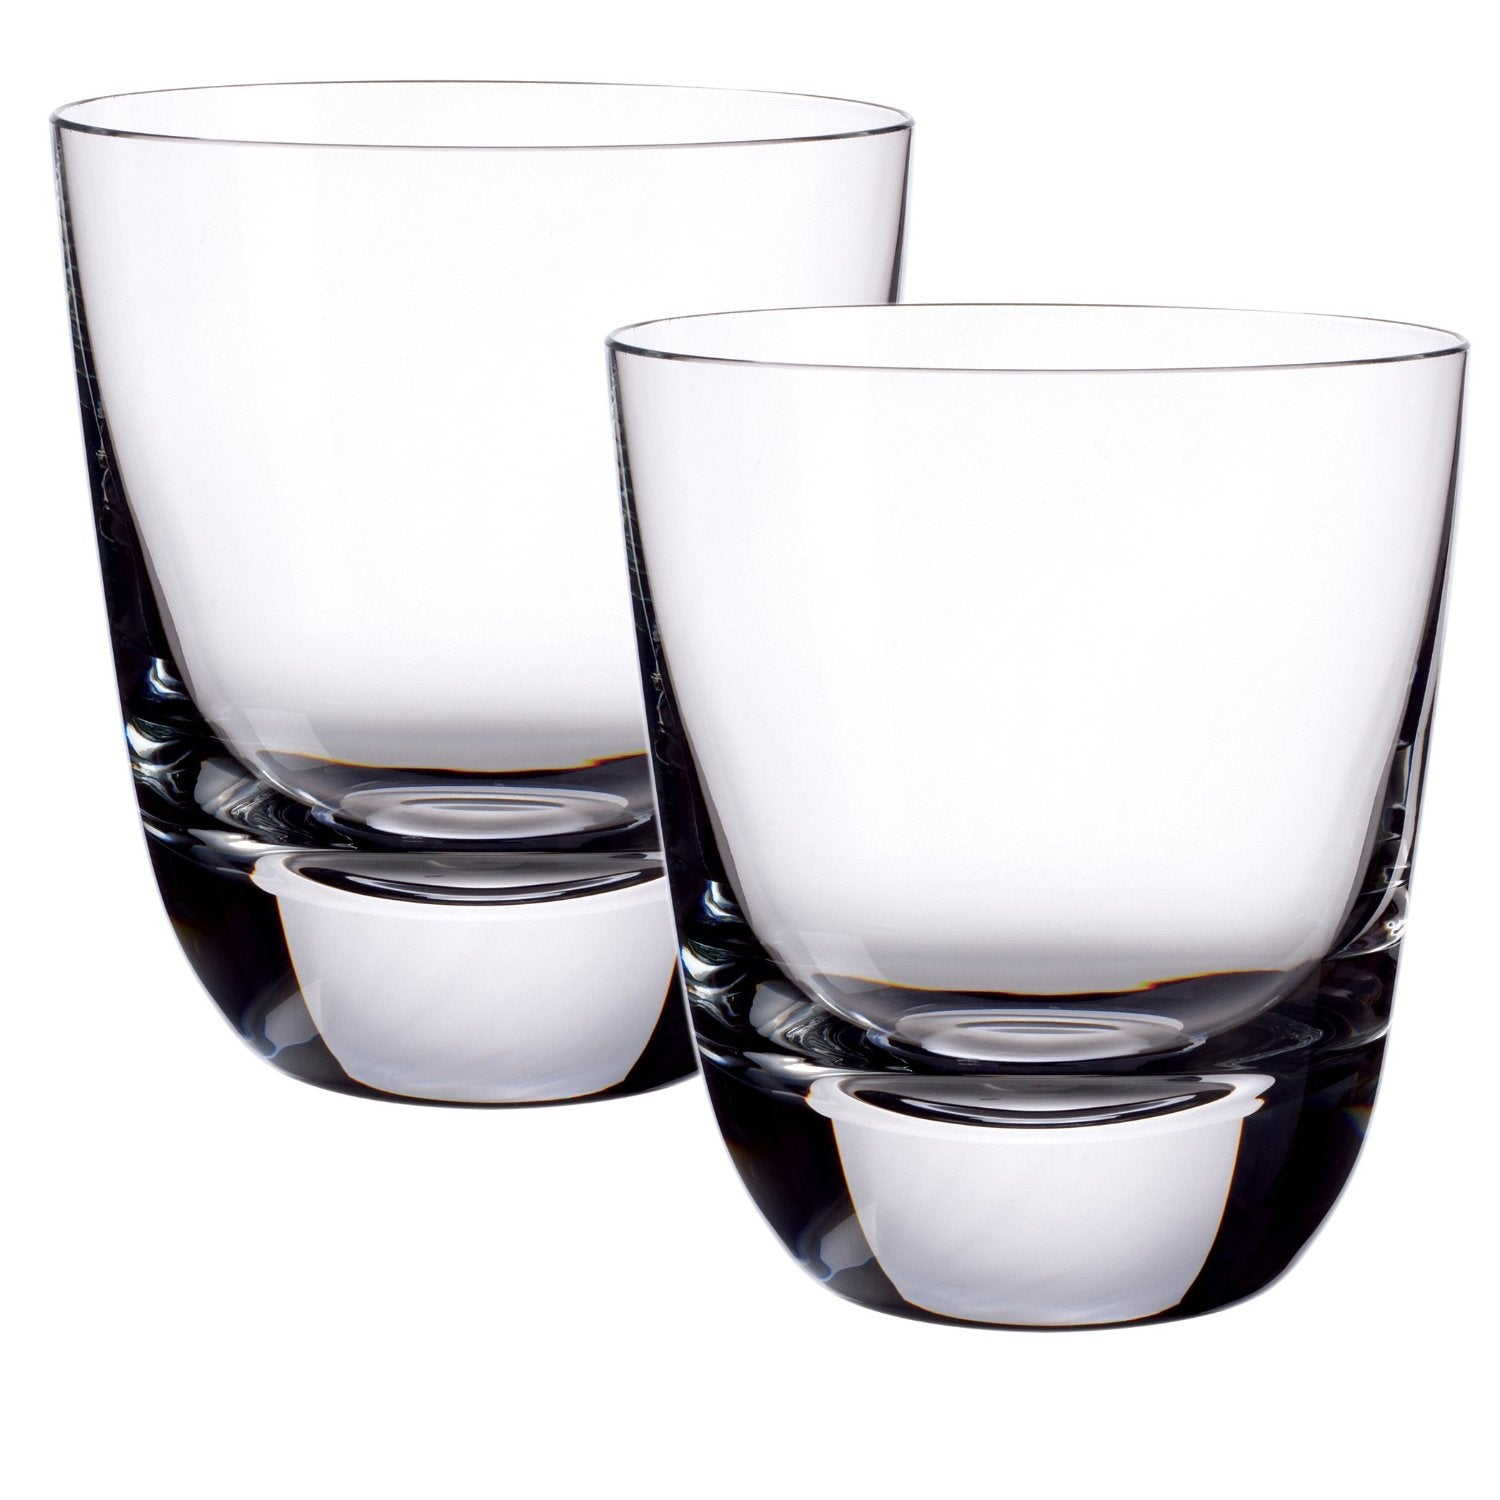 Villeroy & Boch American Bar Straight Bourbon 4-1/2 Inch Double Old Fashioned Tumbler, Set of 2